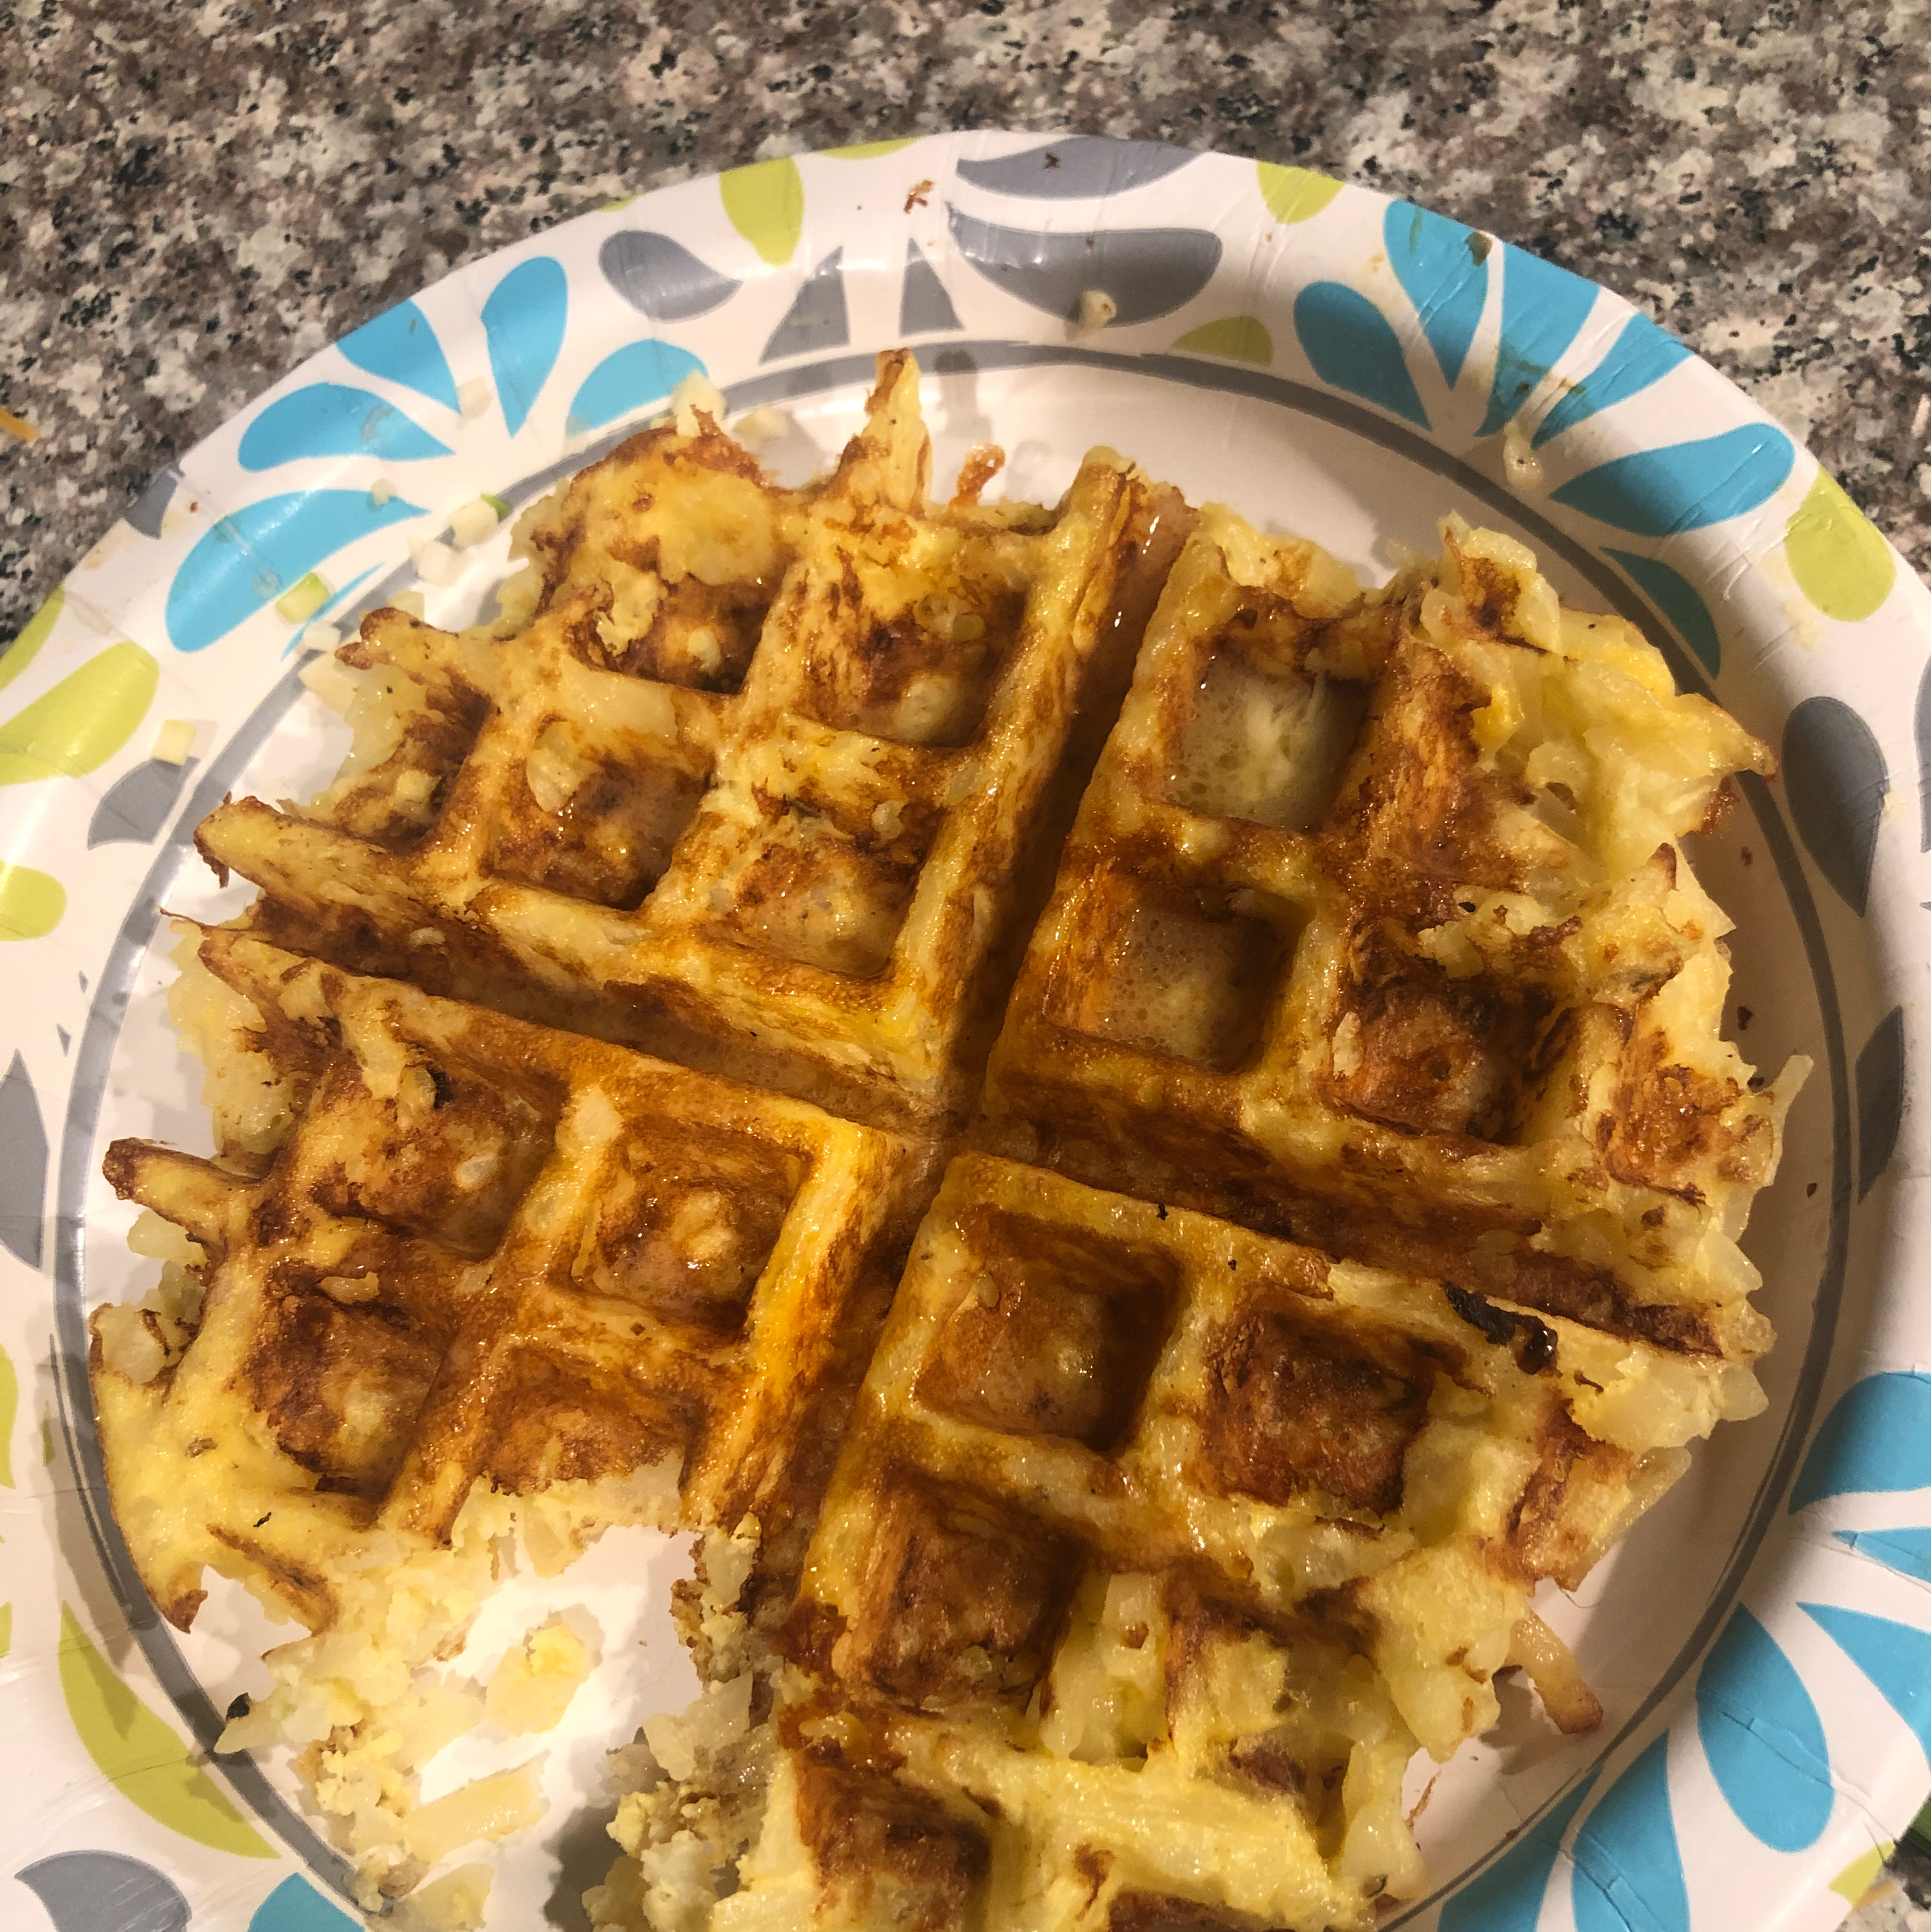 Shonna's Waffle Browns